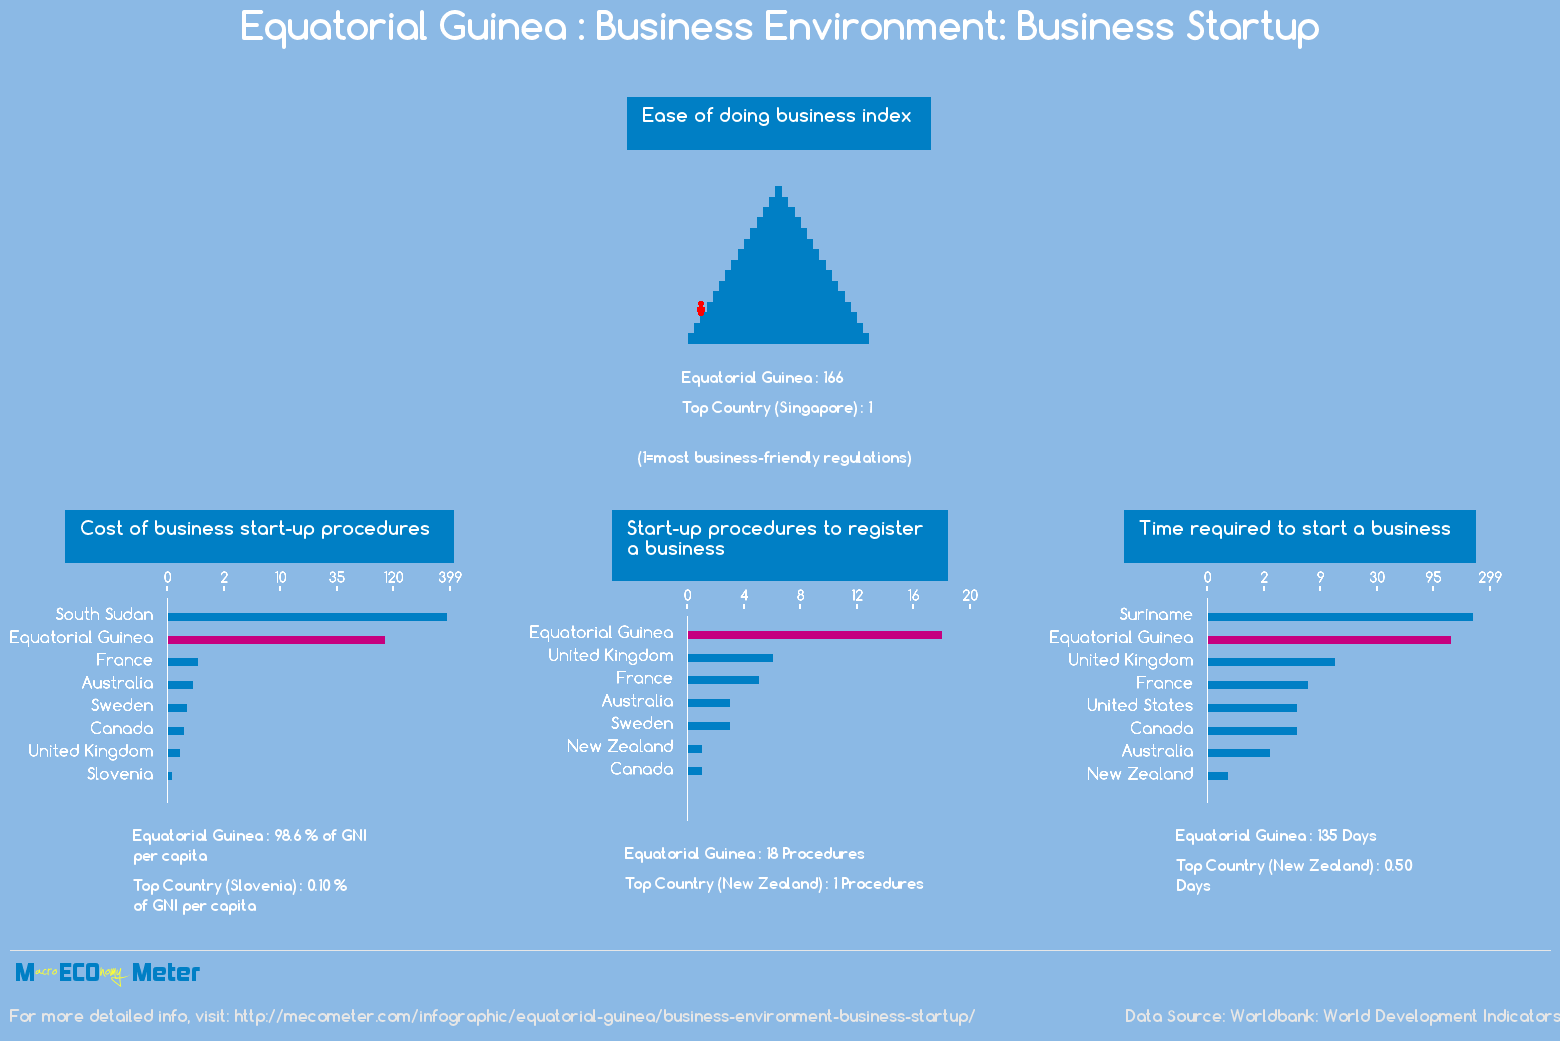 Equatorial Guinea : Business Environment: Business Startup